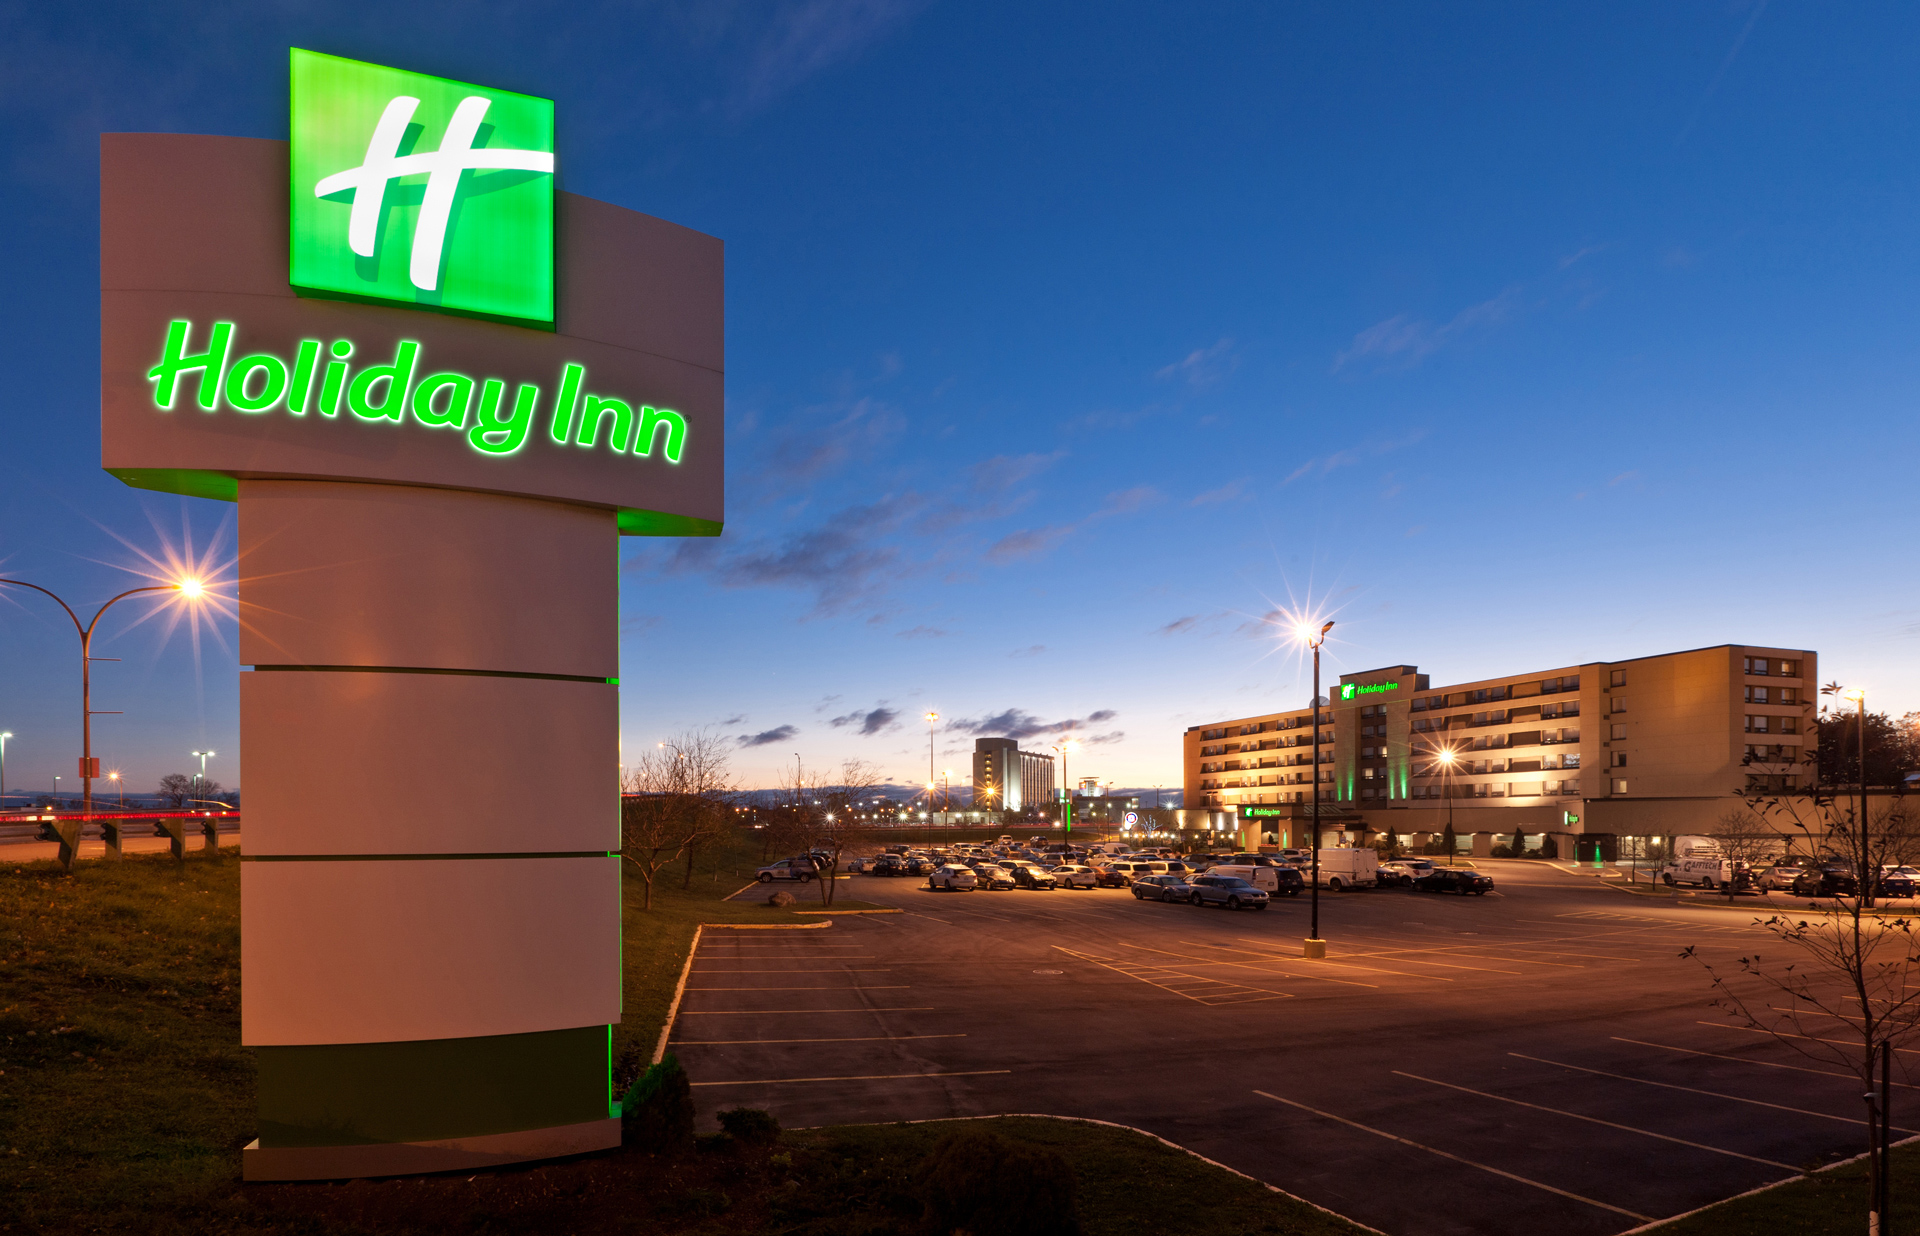 Holiday Inn Hotel Laval